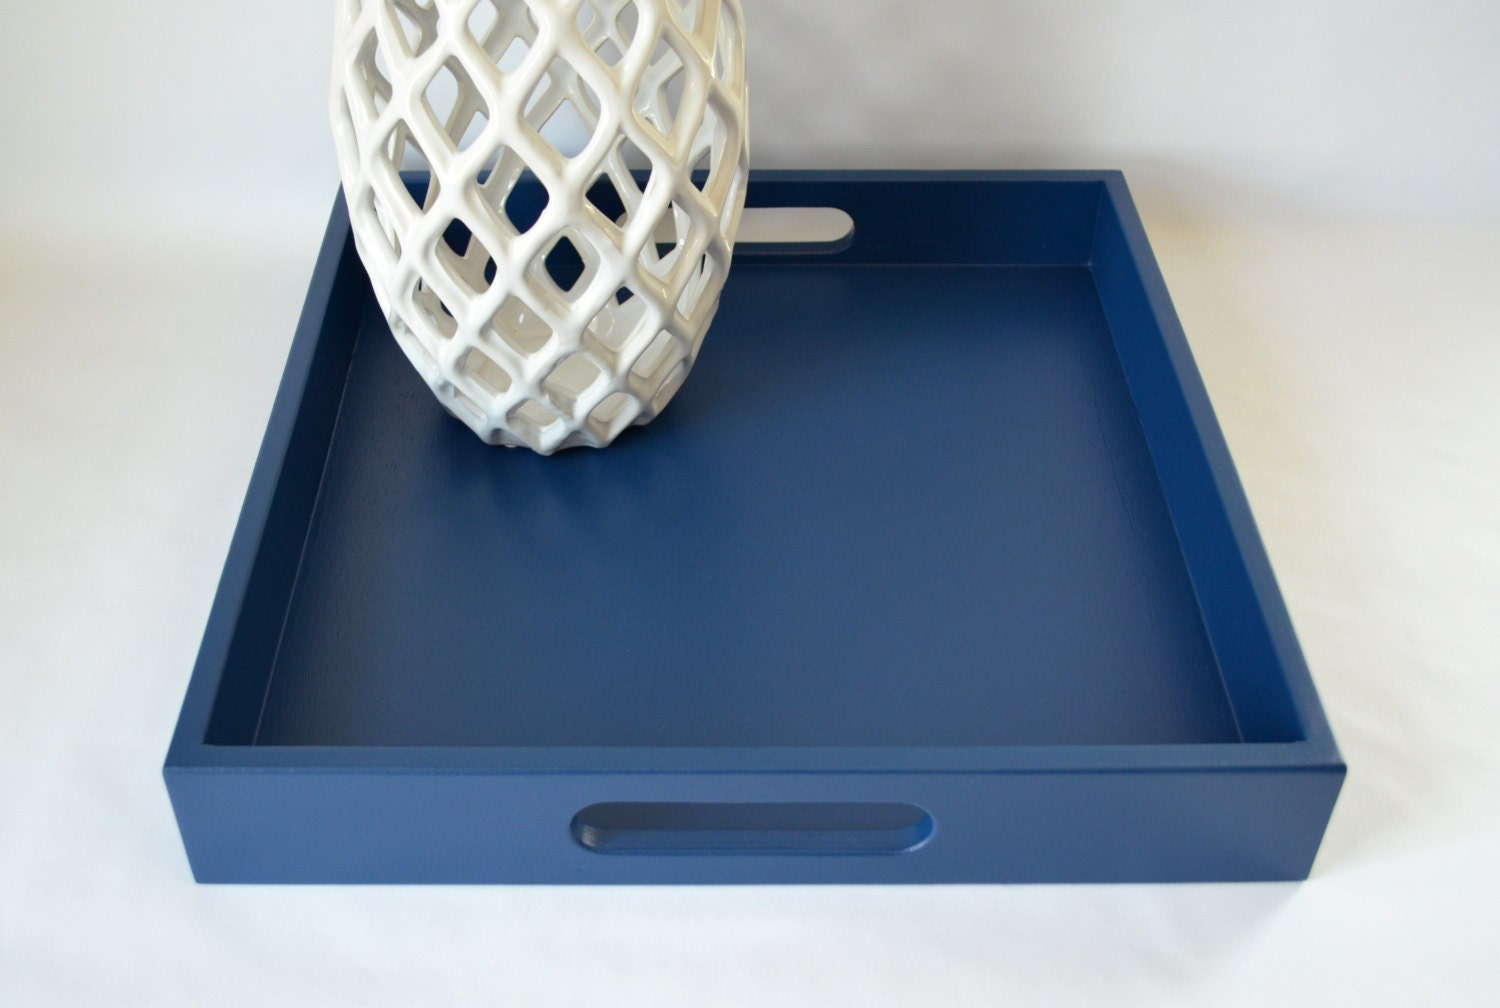 Navy Blue 16 X 16 Wood Square Serving Tray Home Decor